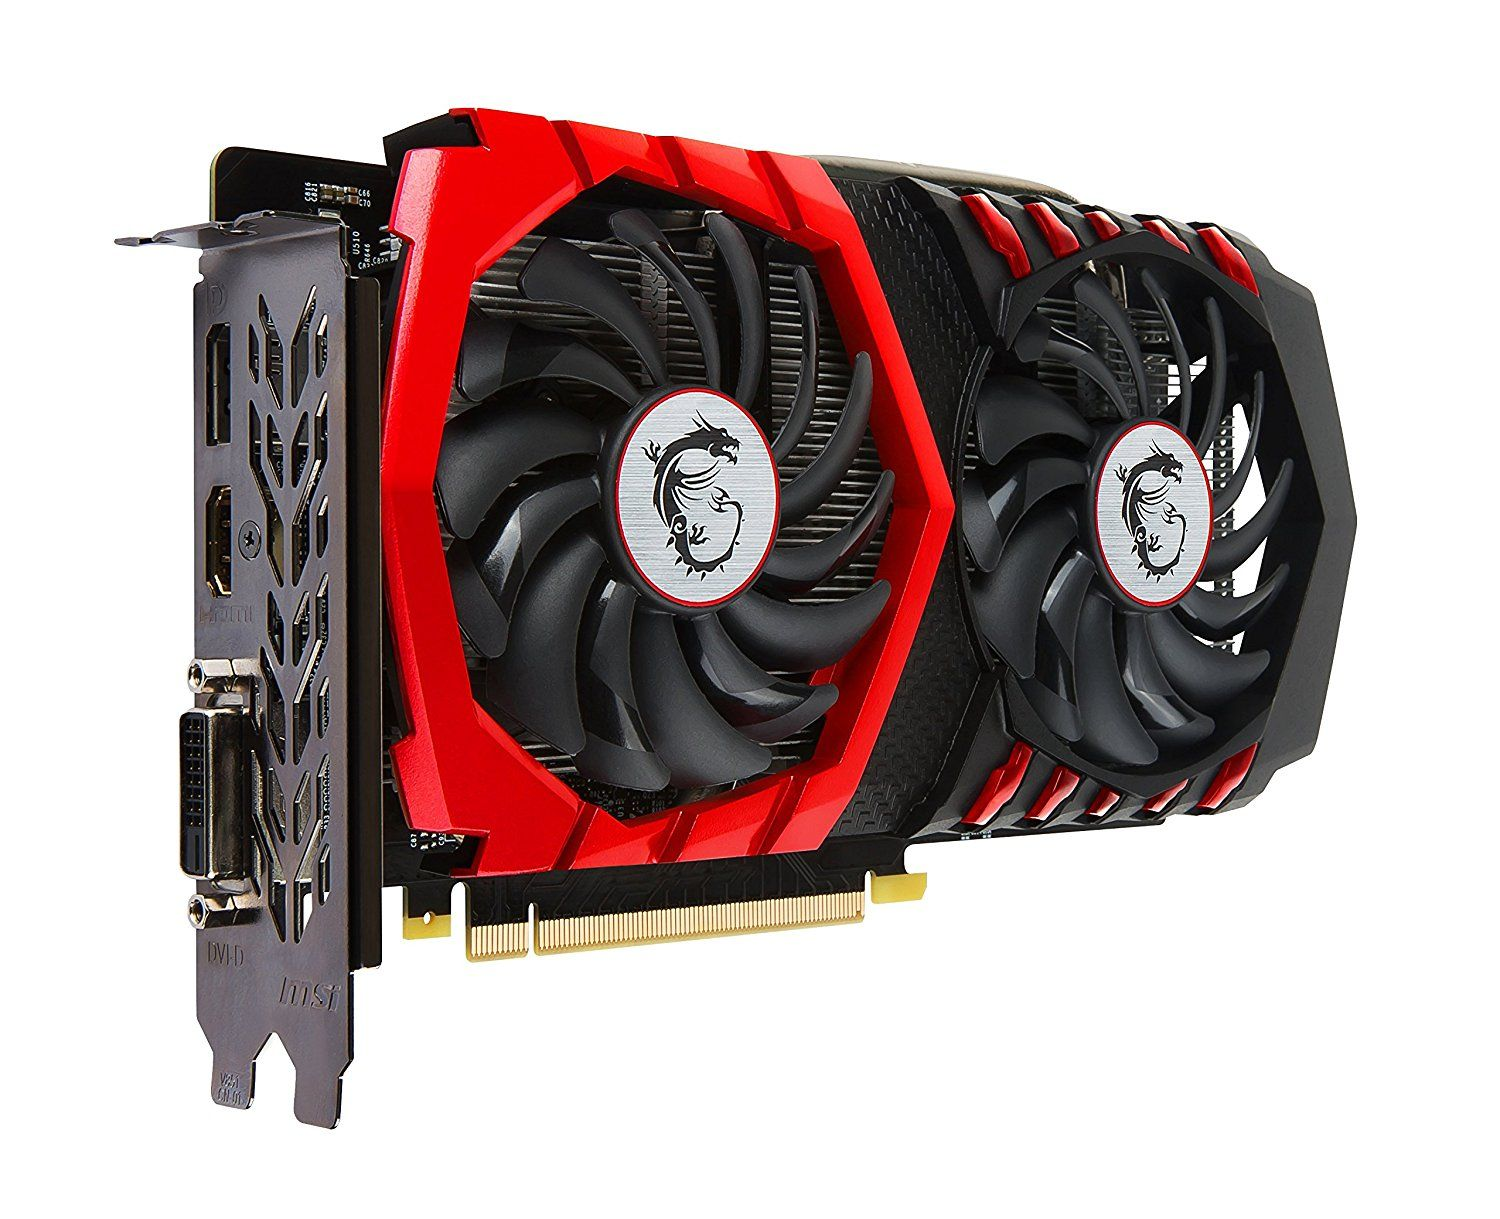 Amazon In Buy Msi Gaming Geforce Gtx 1050 Ti 4gb Gddr5 Directx 12 Graphics Card Geforce Gtx 1050 Ti Gaming X 4g Online At Low Prices I Graphic Card Msi Nvidia